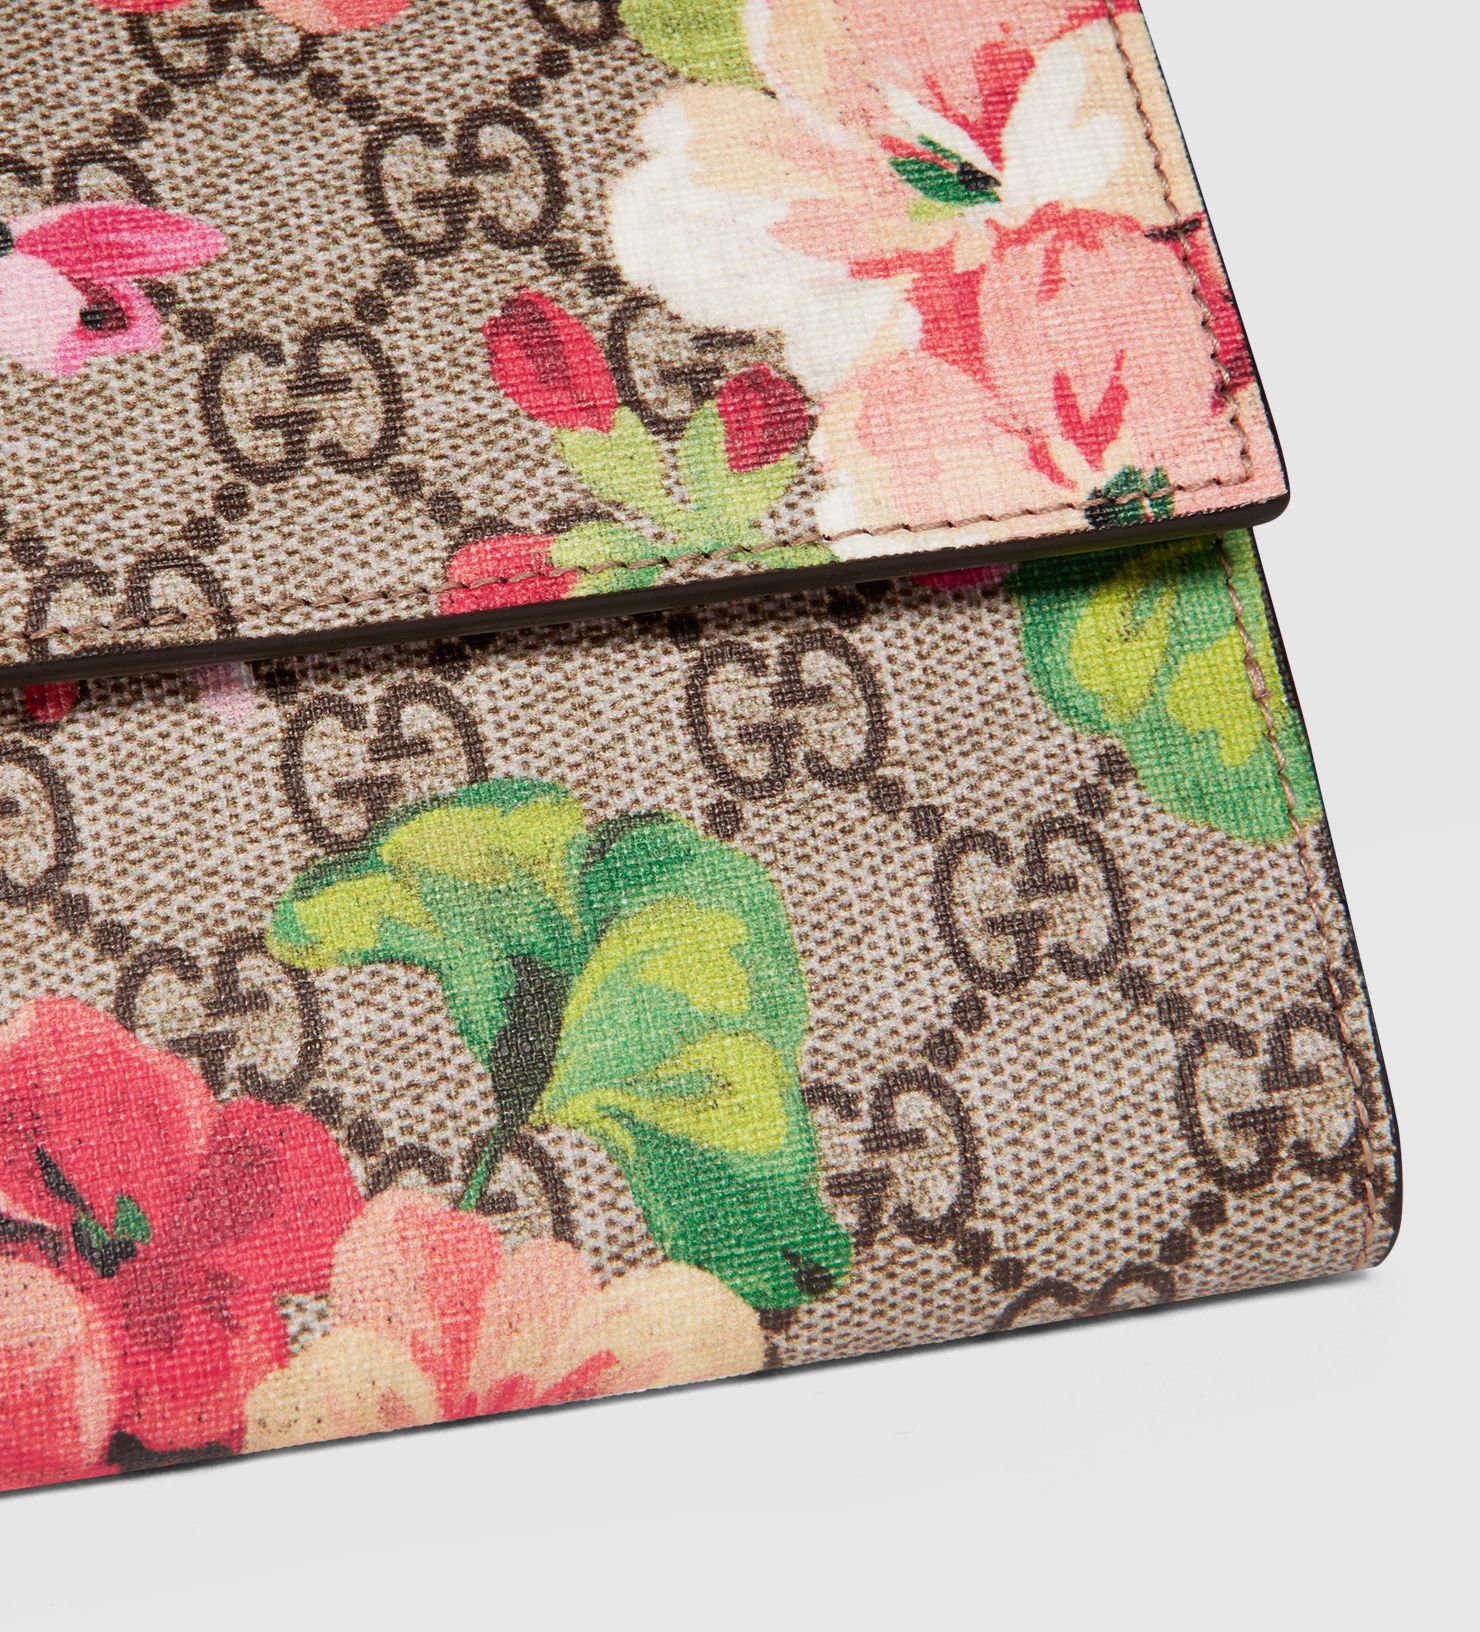 aa26eeac0b4 Lyst - Gucci Gg Blooms French Flap Wallet